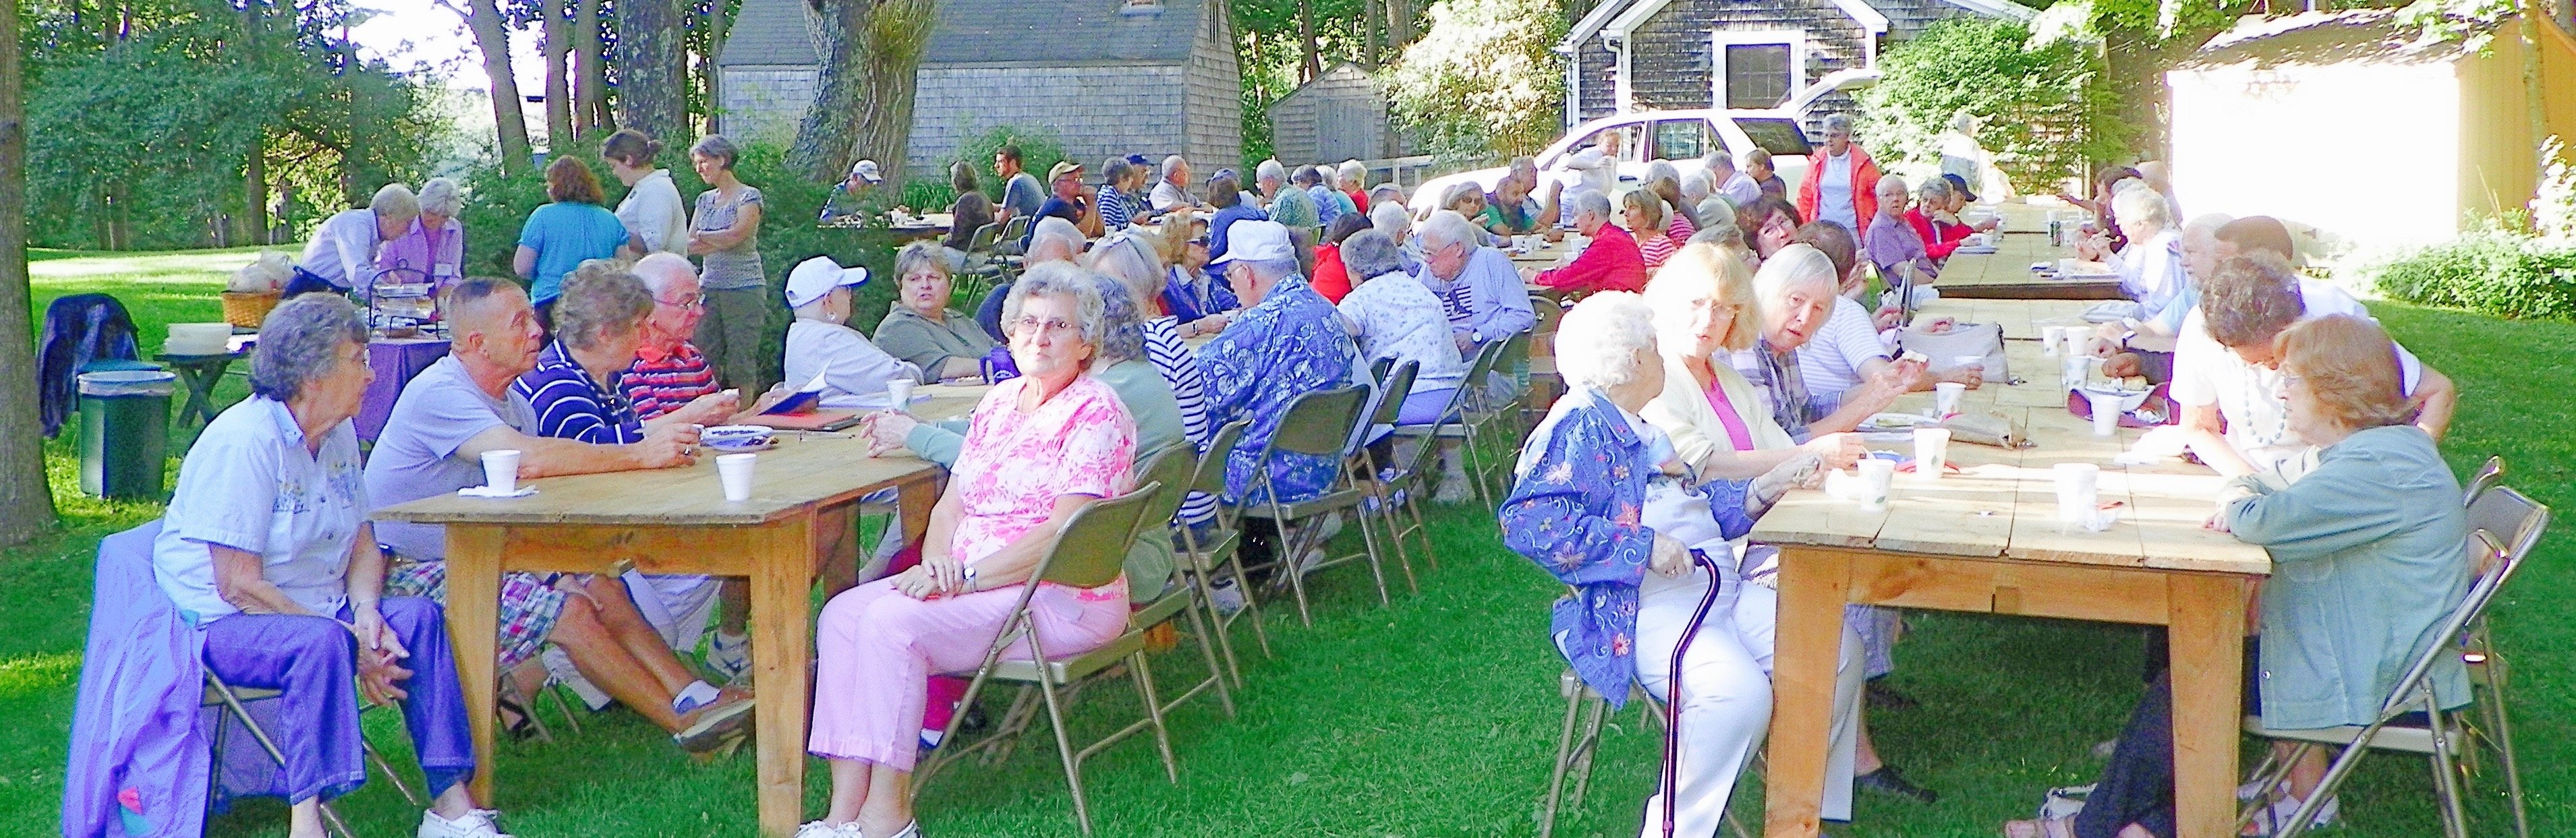 Happy people enjoying a Bean hole bean supper, aine yellow-eyed beans cooked underground the old-fashioned way - run out. Menu: beans, Kirshner hot dog, coleslaw, biscuits with real butter and a pickle or two,